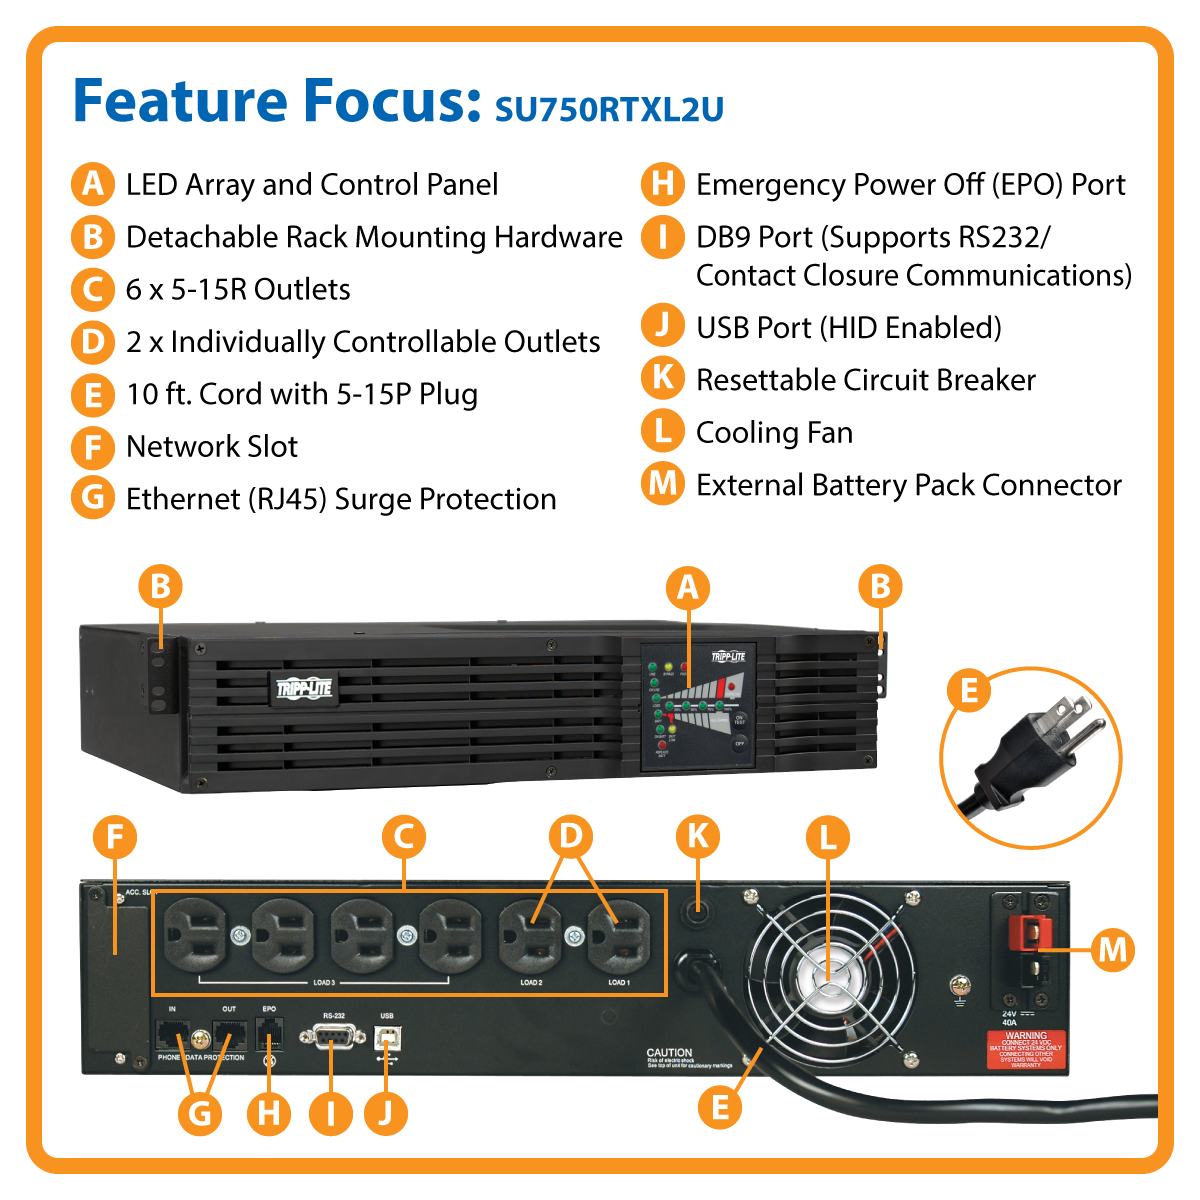 slide 1 of 5,show larger image, su750rtxl2u smartonline® double-conversion rack/tower sine wave ups with expandable runtime and network slot